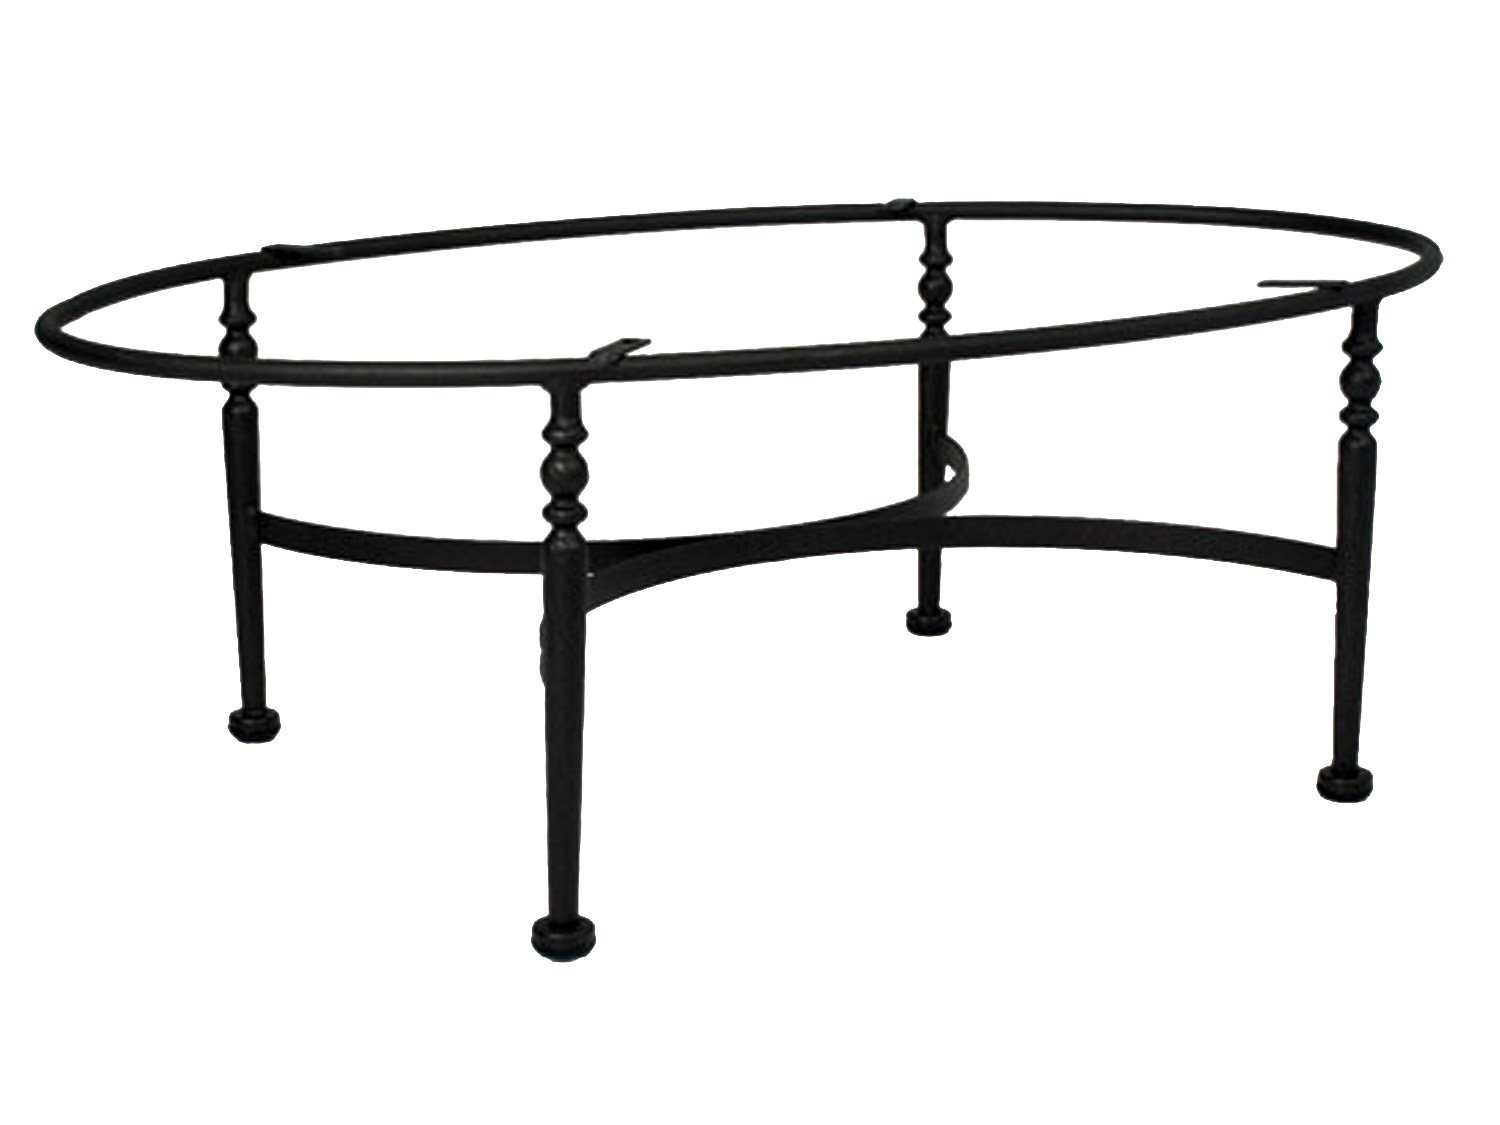 Meadowcraft Athens Wrought Iron Coffee Table Base